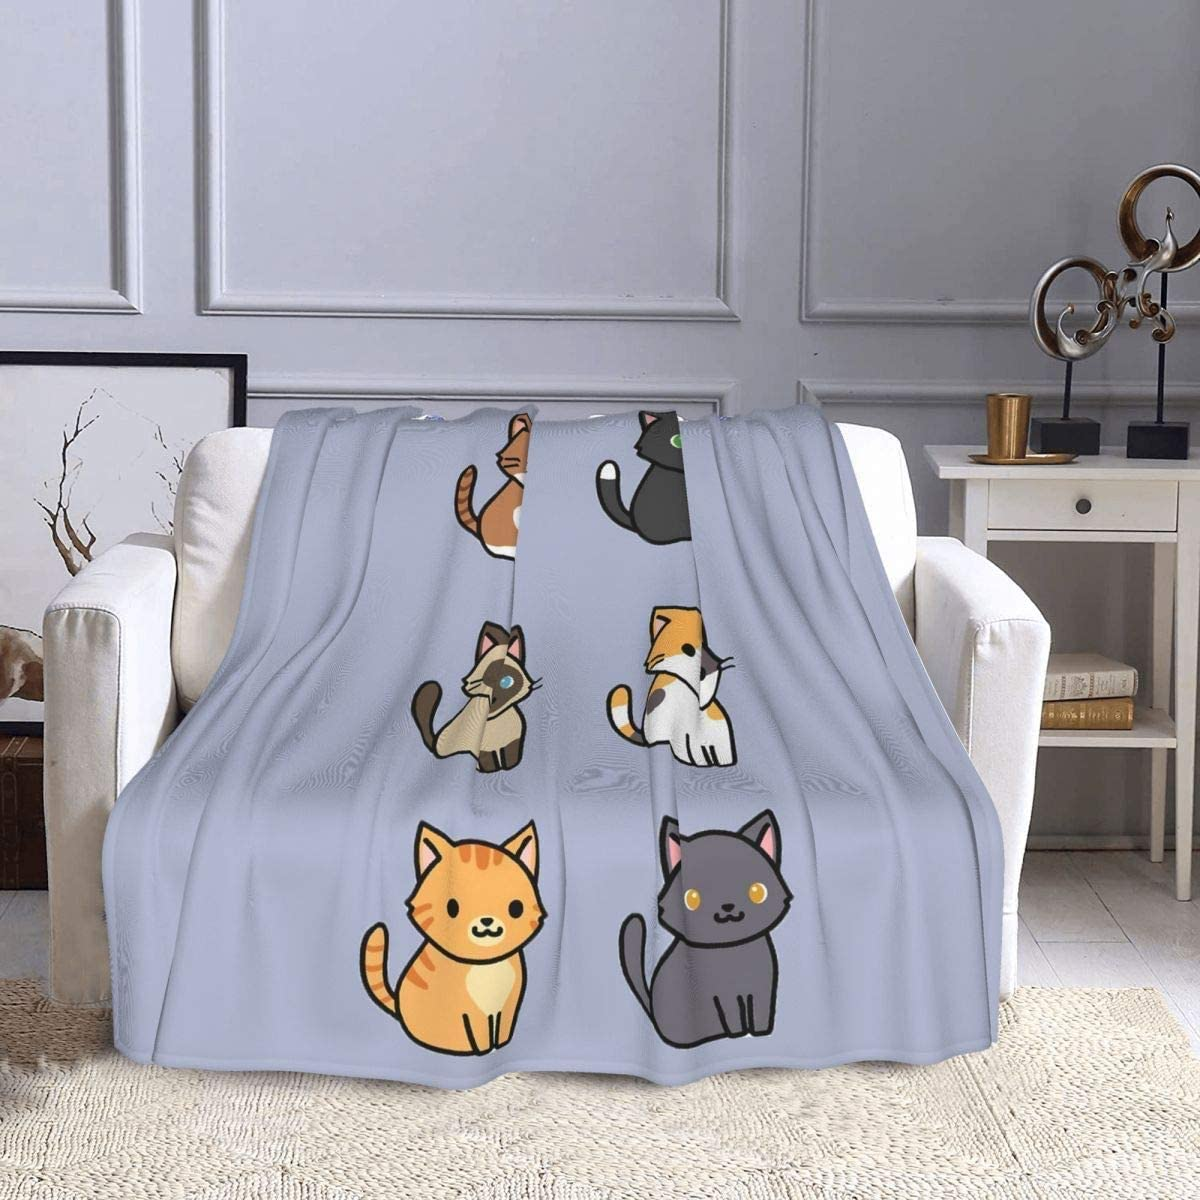 I love you here. Funny Cats Ultra-Soft Flannel Blanket Lightweight Cozy Bed Throw Printing Blankets and Throws for Bed Couch 50x40 inch